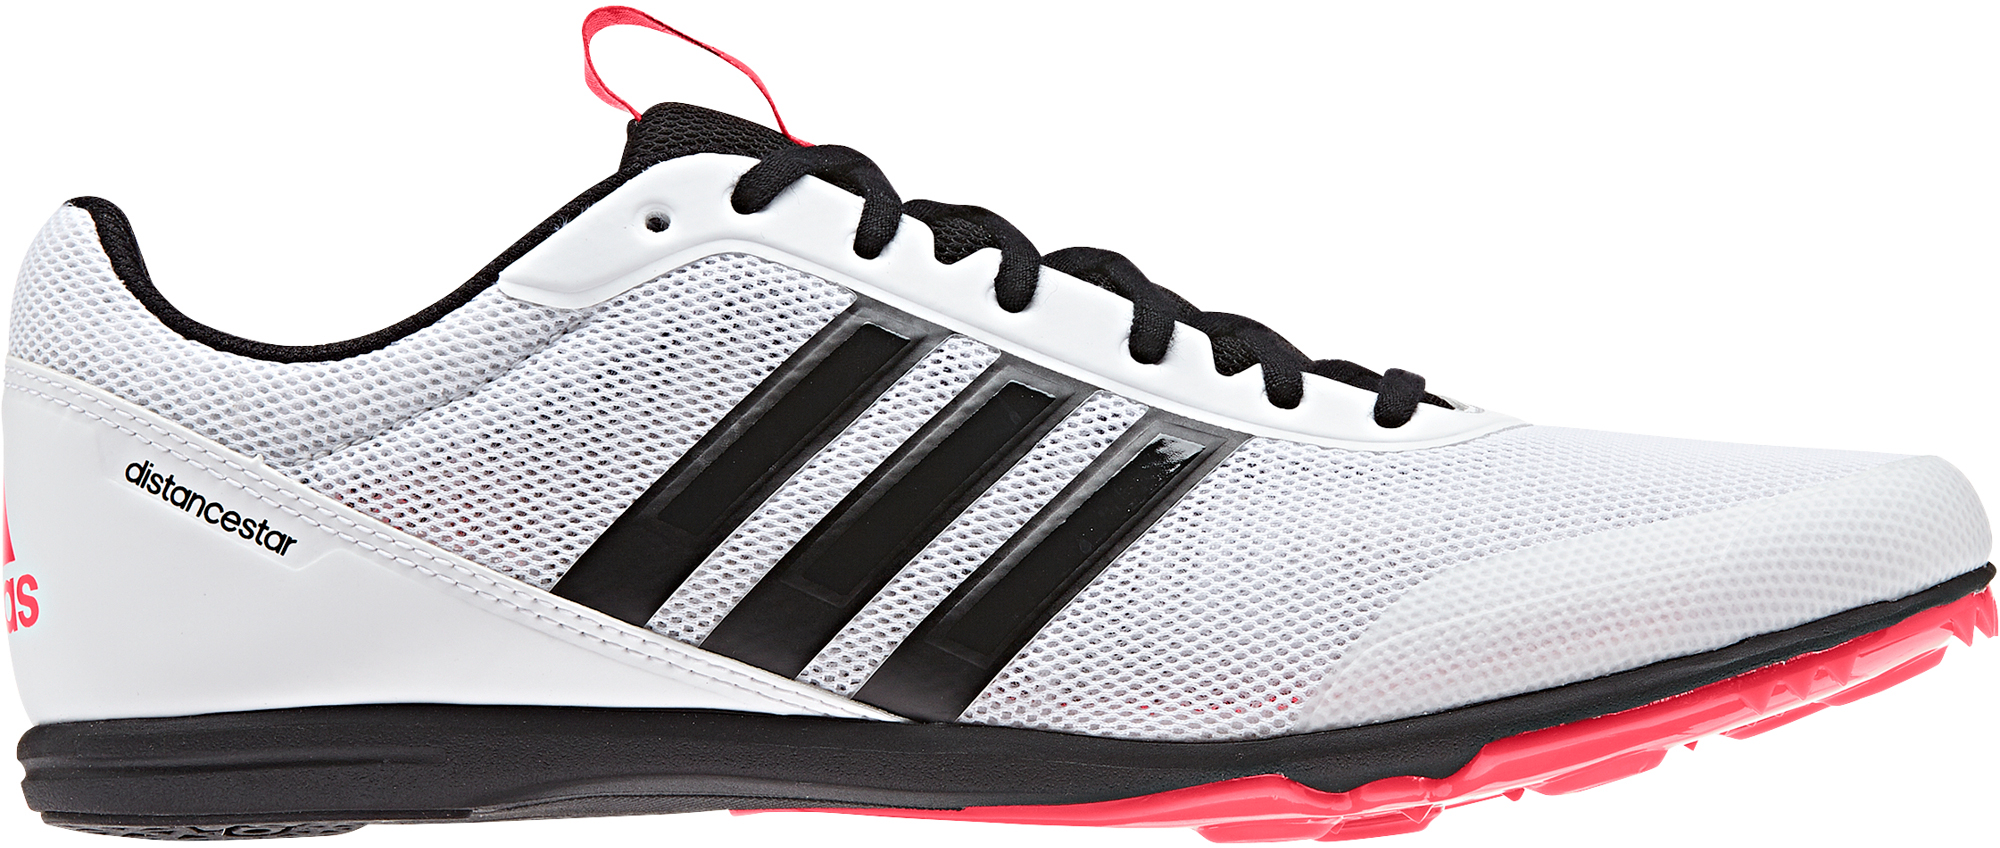 Adidas - Distancestar | cycling shoes